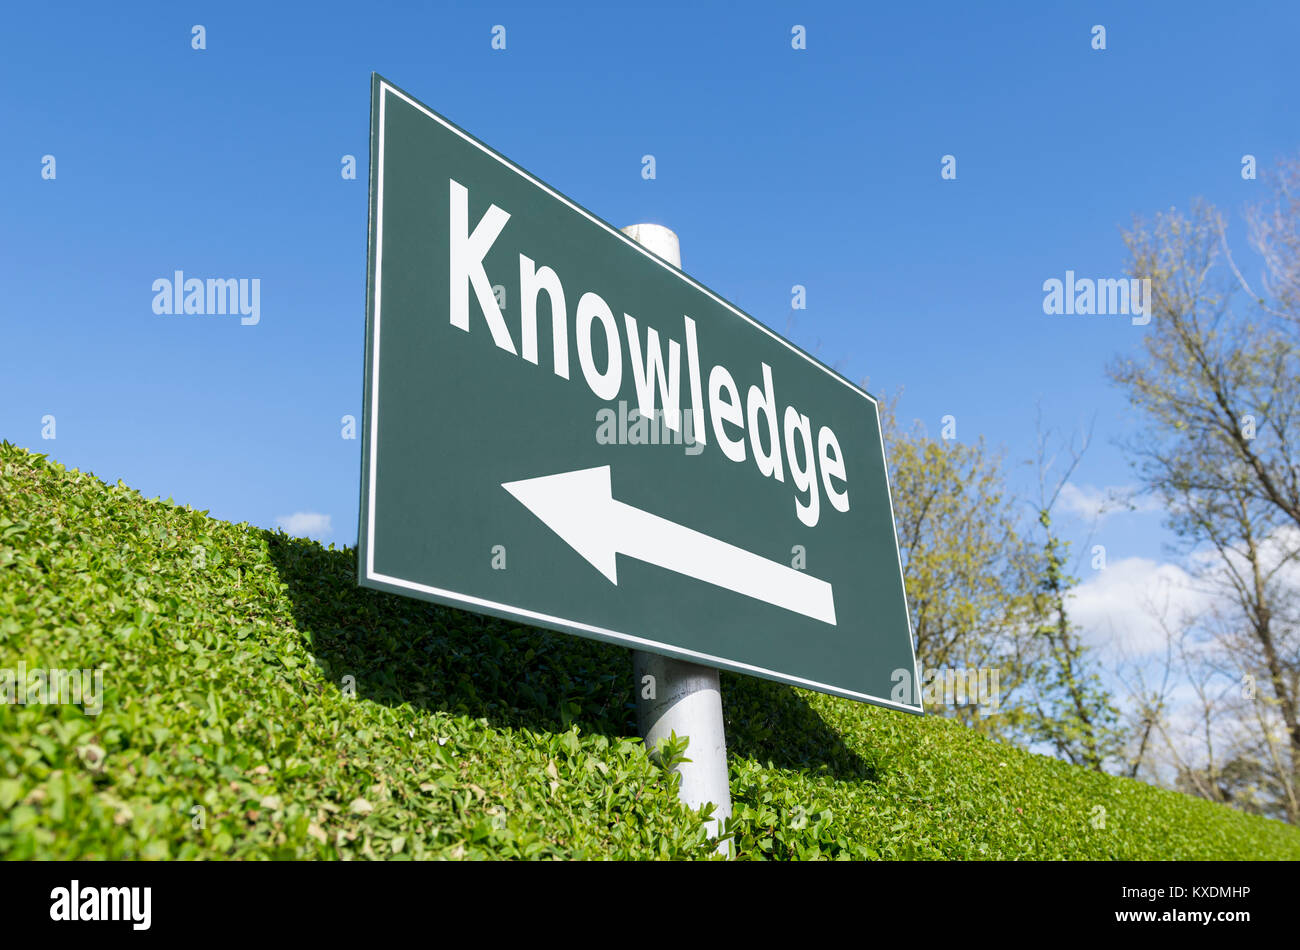 Knowledge concept. Sign pointing in the direction of knowledge. - Stock Image